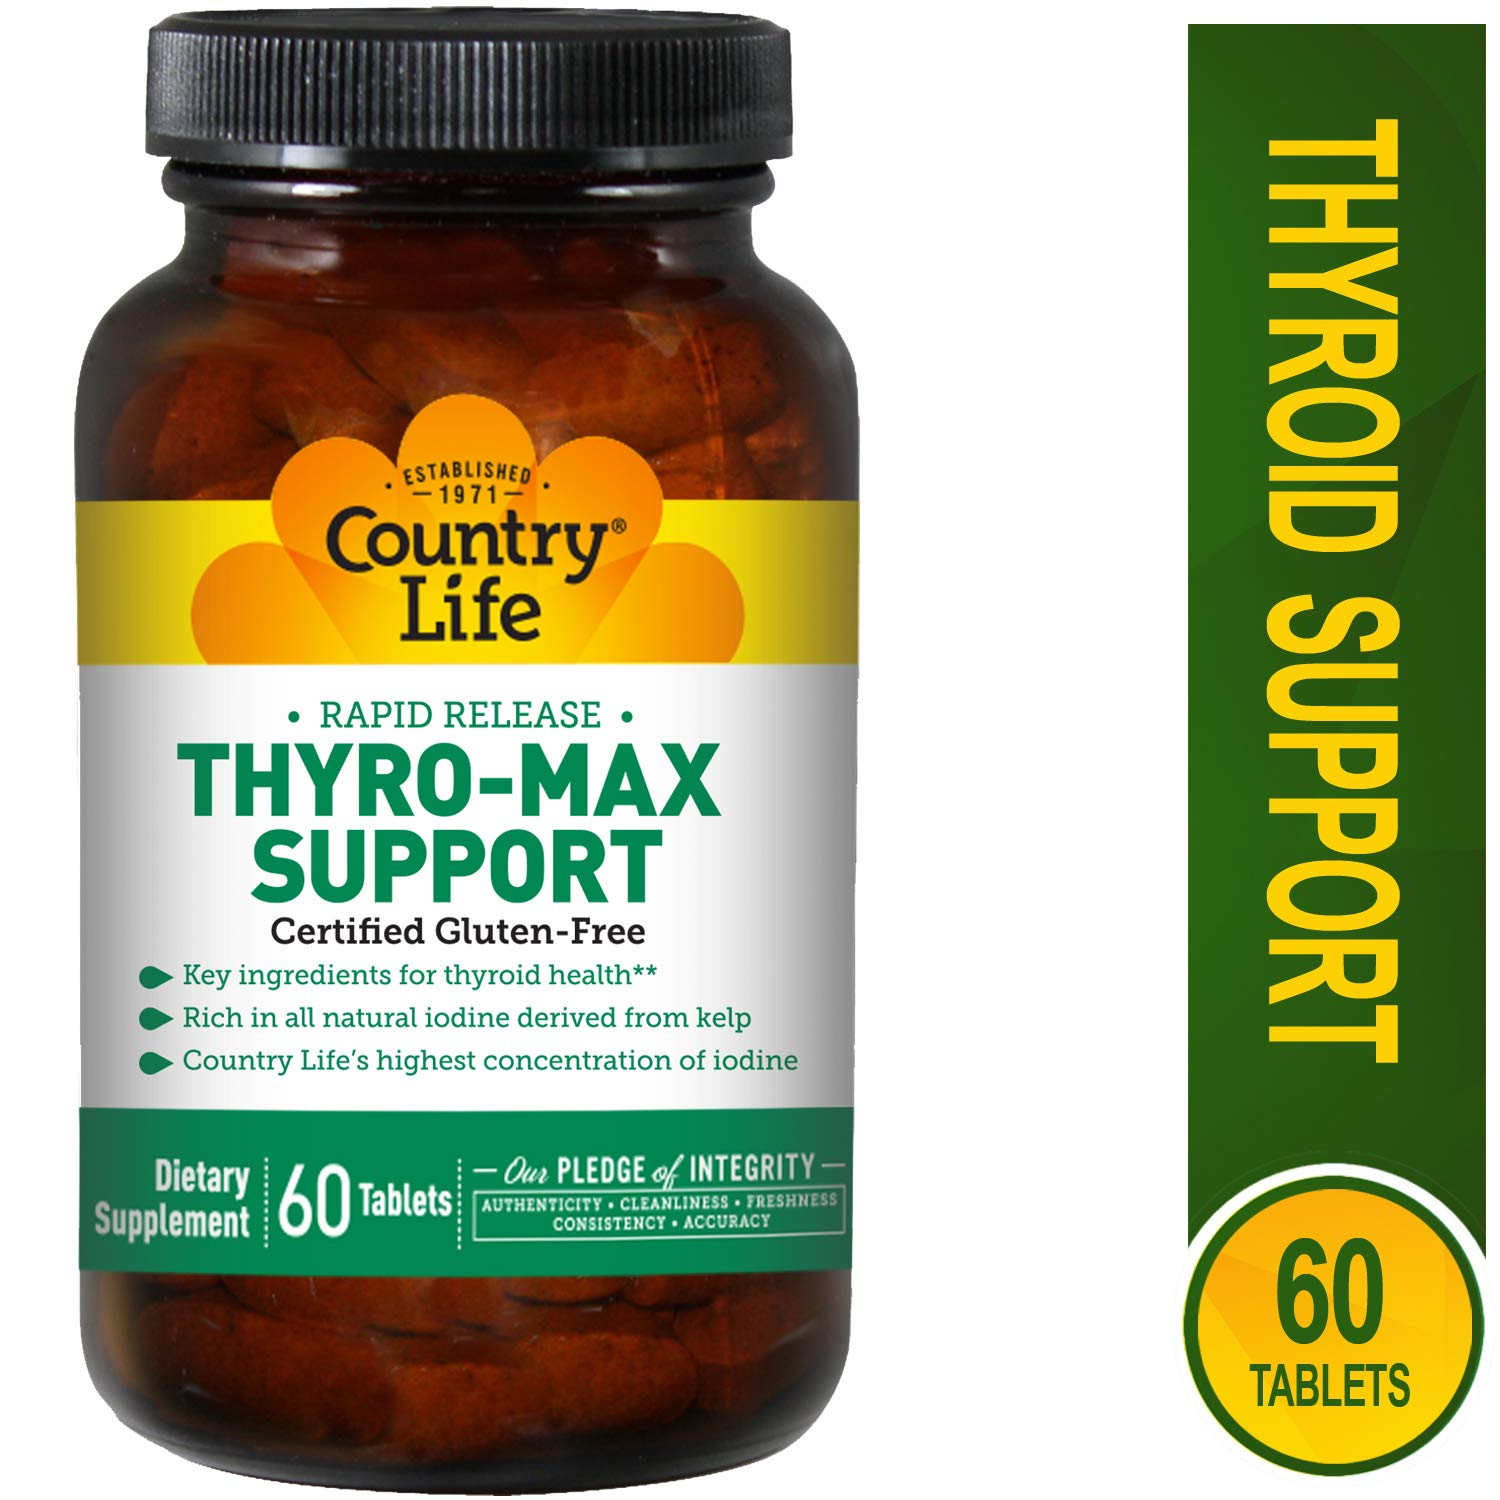 Country Life Thyro-Max Support - 60 Tablets - Thyroid Gland Support - Gluten Free by Country Life